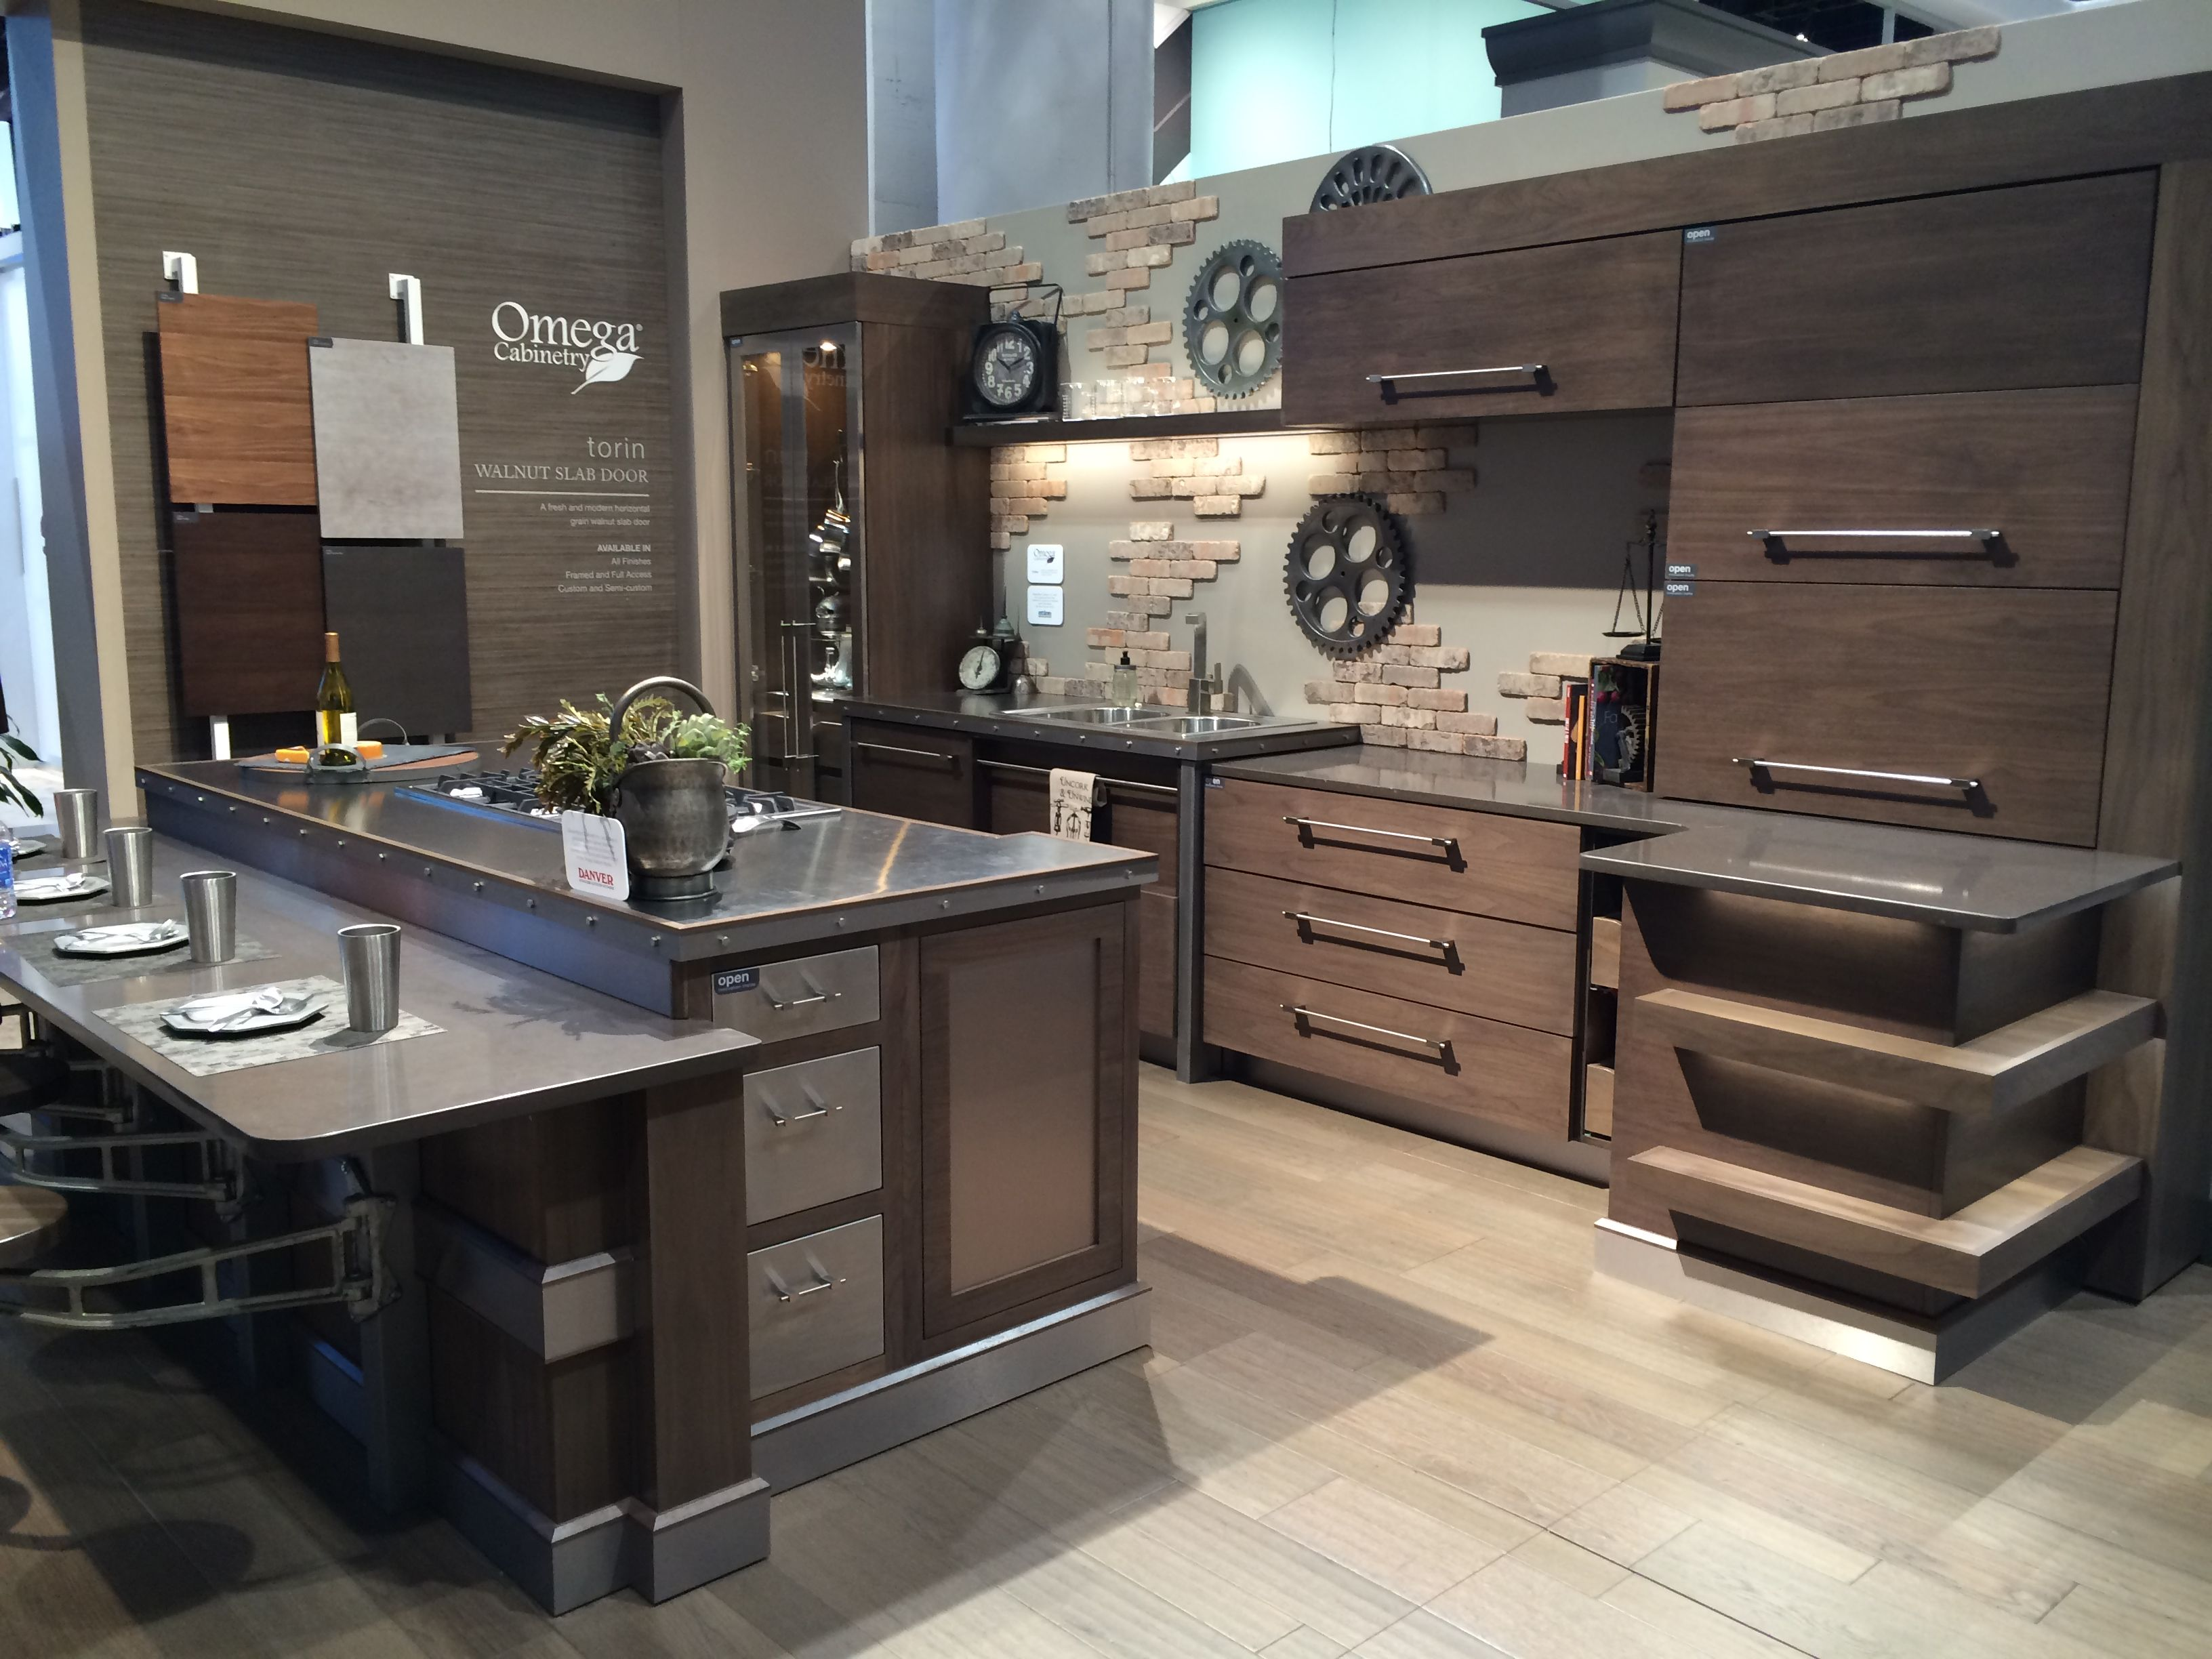 superior Kitchen And Bath Trade Shows #2: KBIS, in conjunction with the National Kitchen and Bath Association (NKBA) is an inspiring, interactive platform that showcases the latest industry products ...